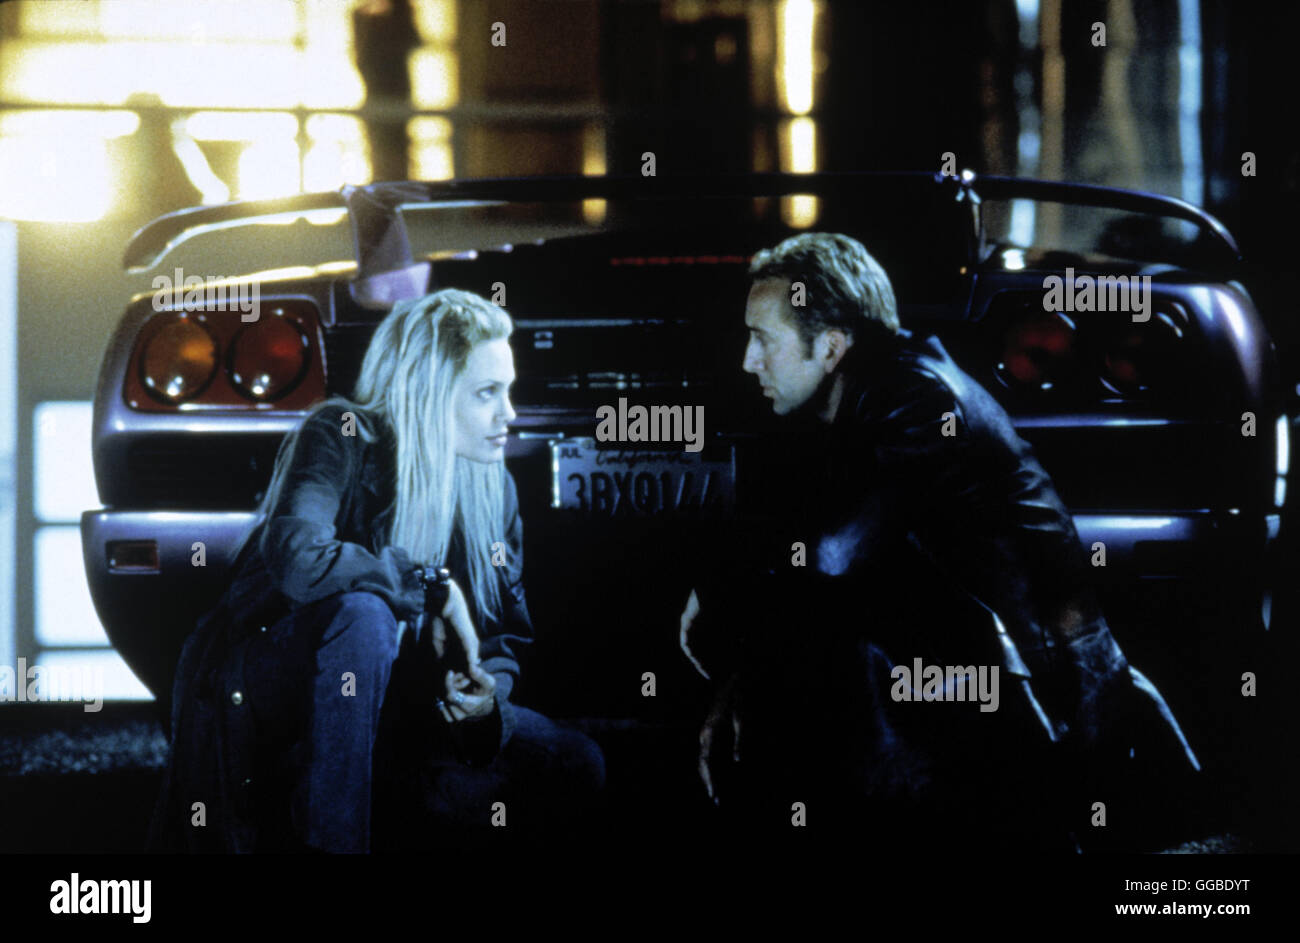 NUR NOCH 60 SEKUNDEN Gone in Sixty Seconds USA 2000 Dominic Sena Sway (ANGELINA JOLIE) and Randall (NICOLAS CAGE) - Stock Image